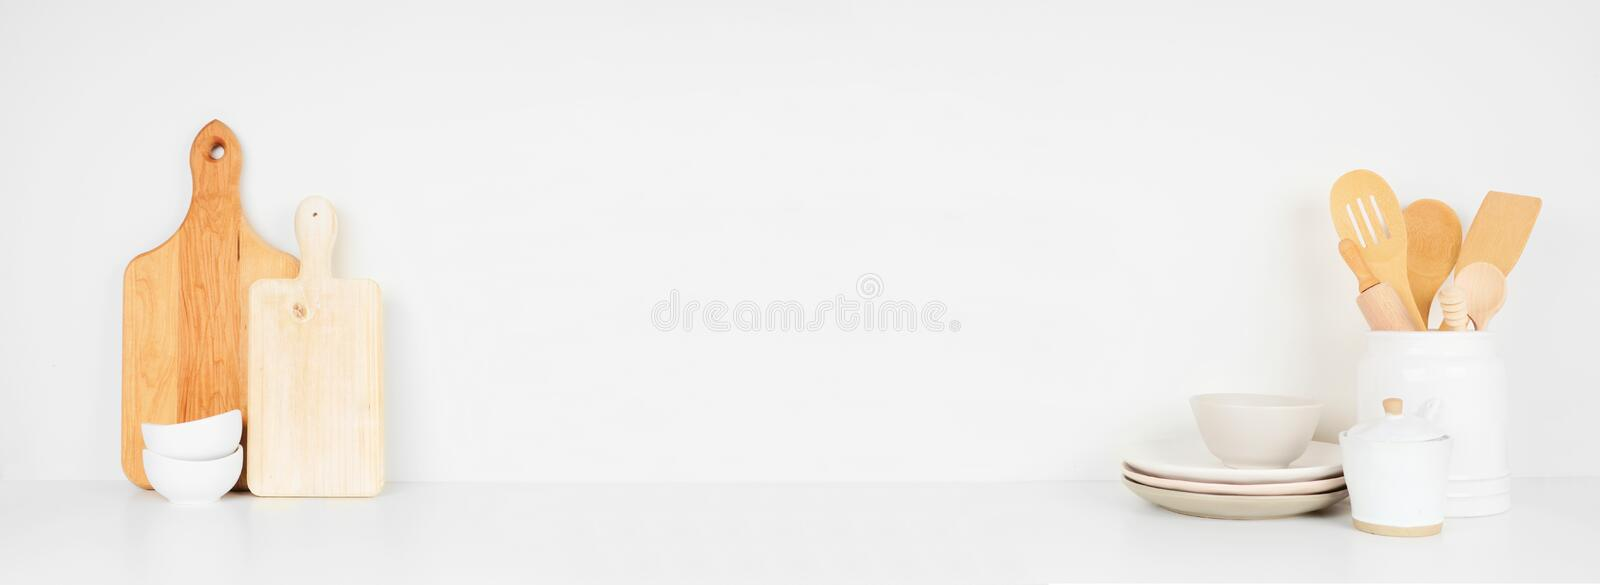 Kitchenware and utensils on a white shelf or counter. Banner with copy space against a white wall. stock photos